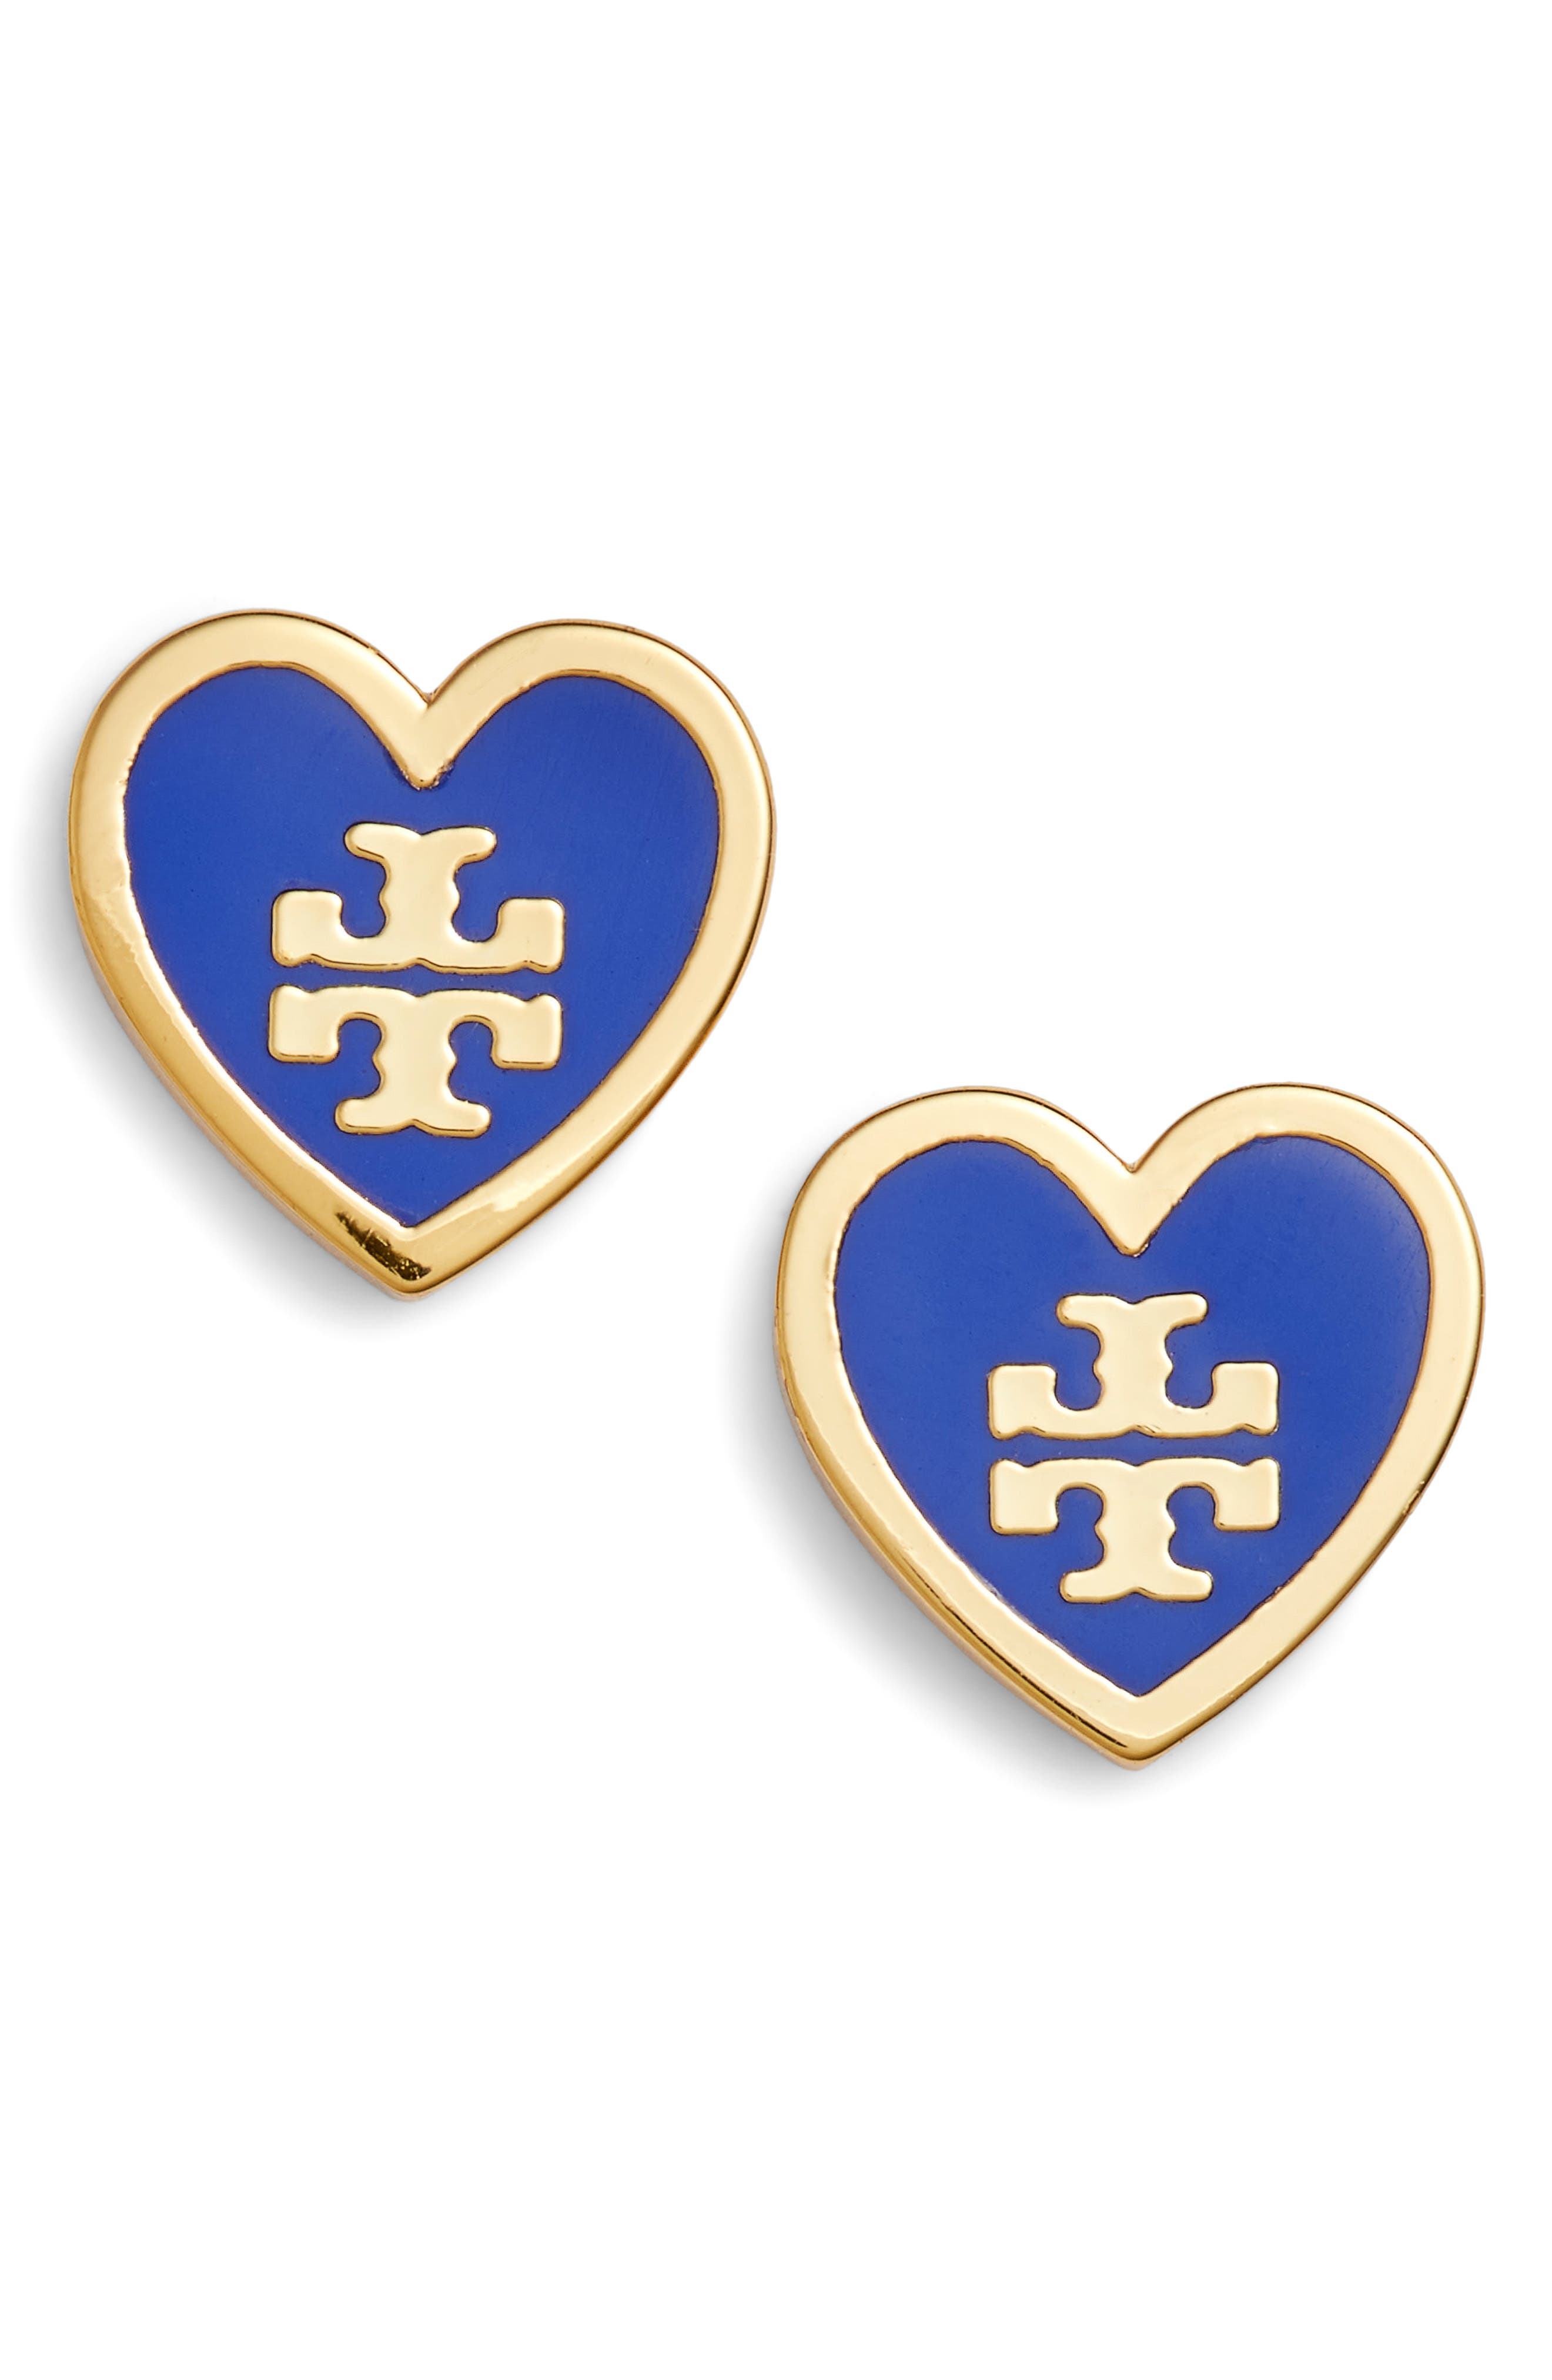 Tory Burch Logo Heart Stud Earrings